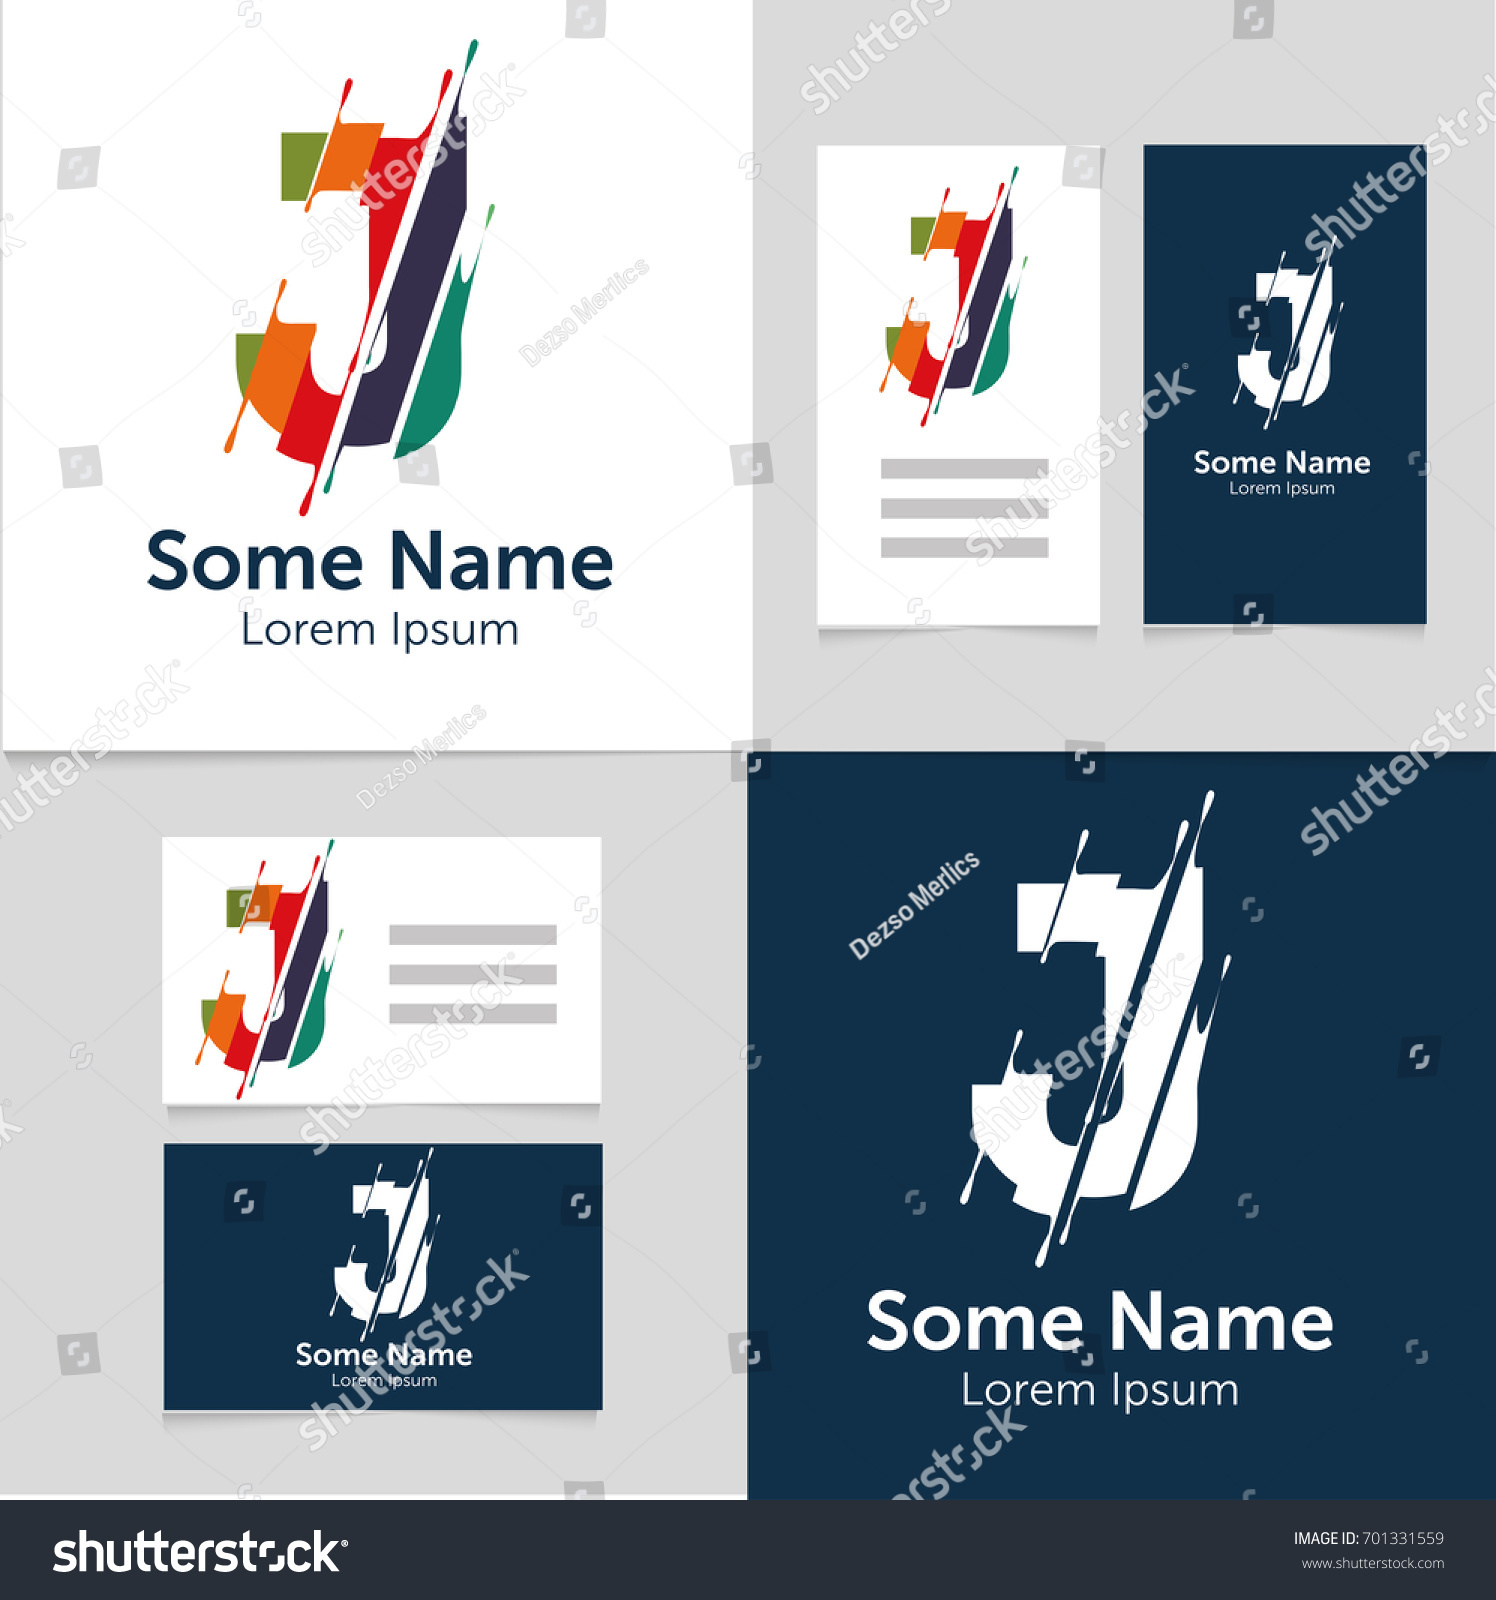 editable business card template j letter stock vector